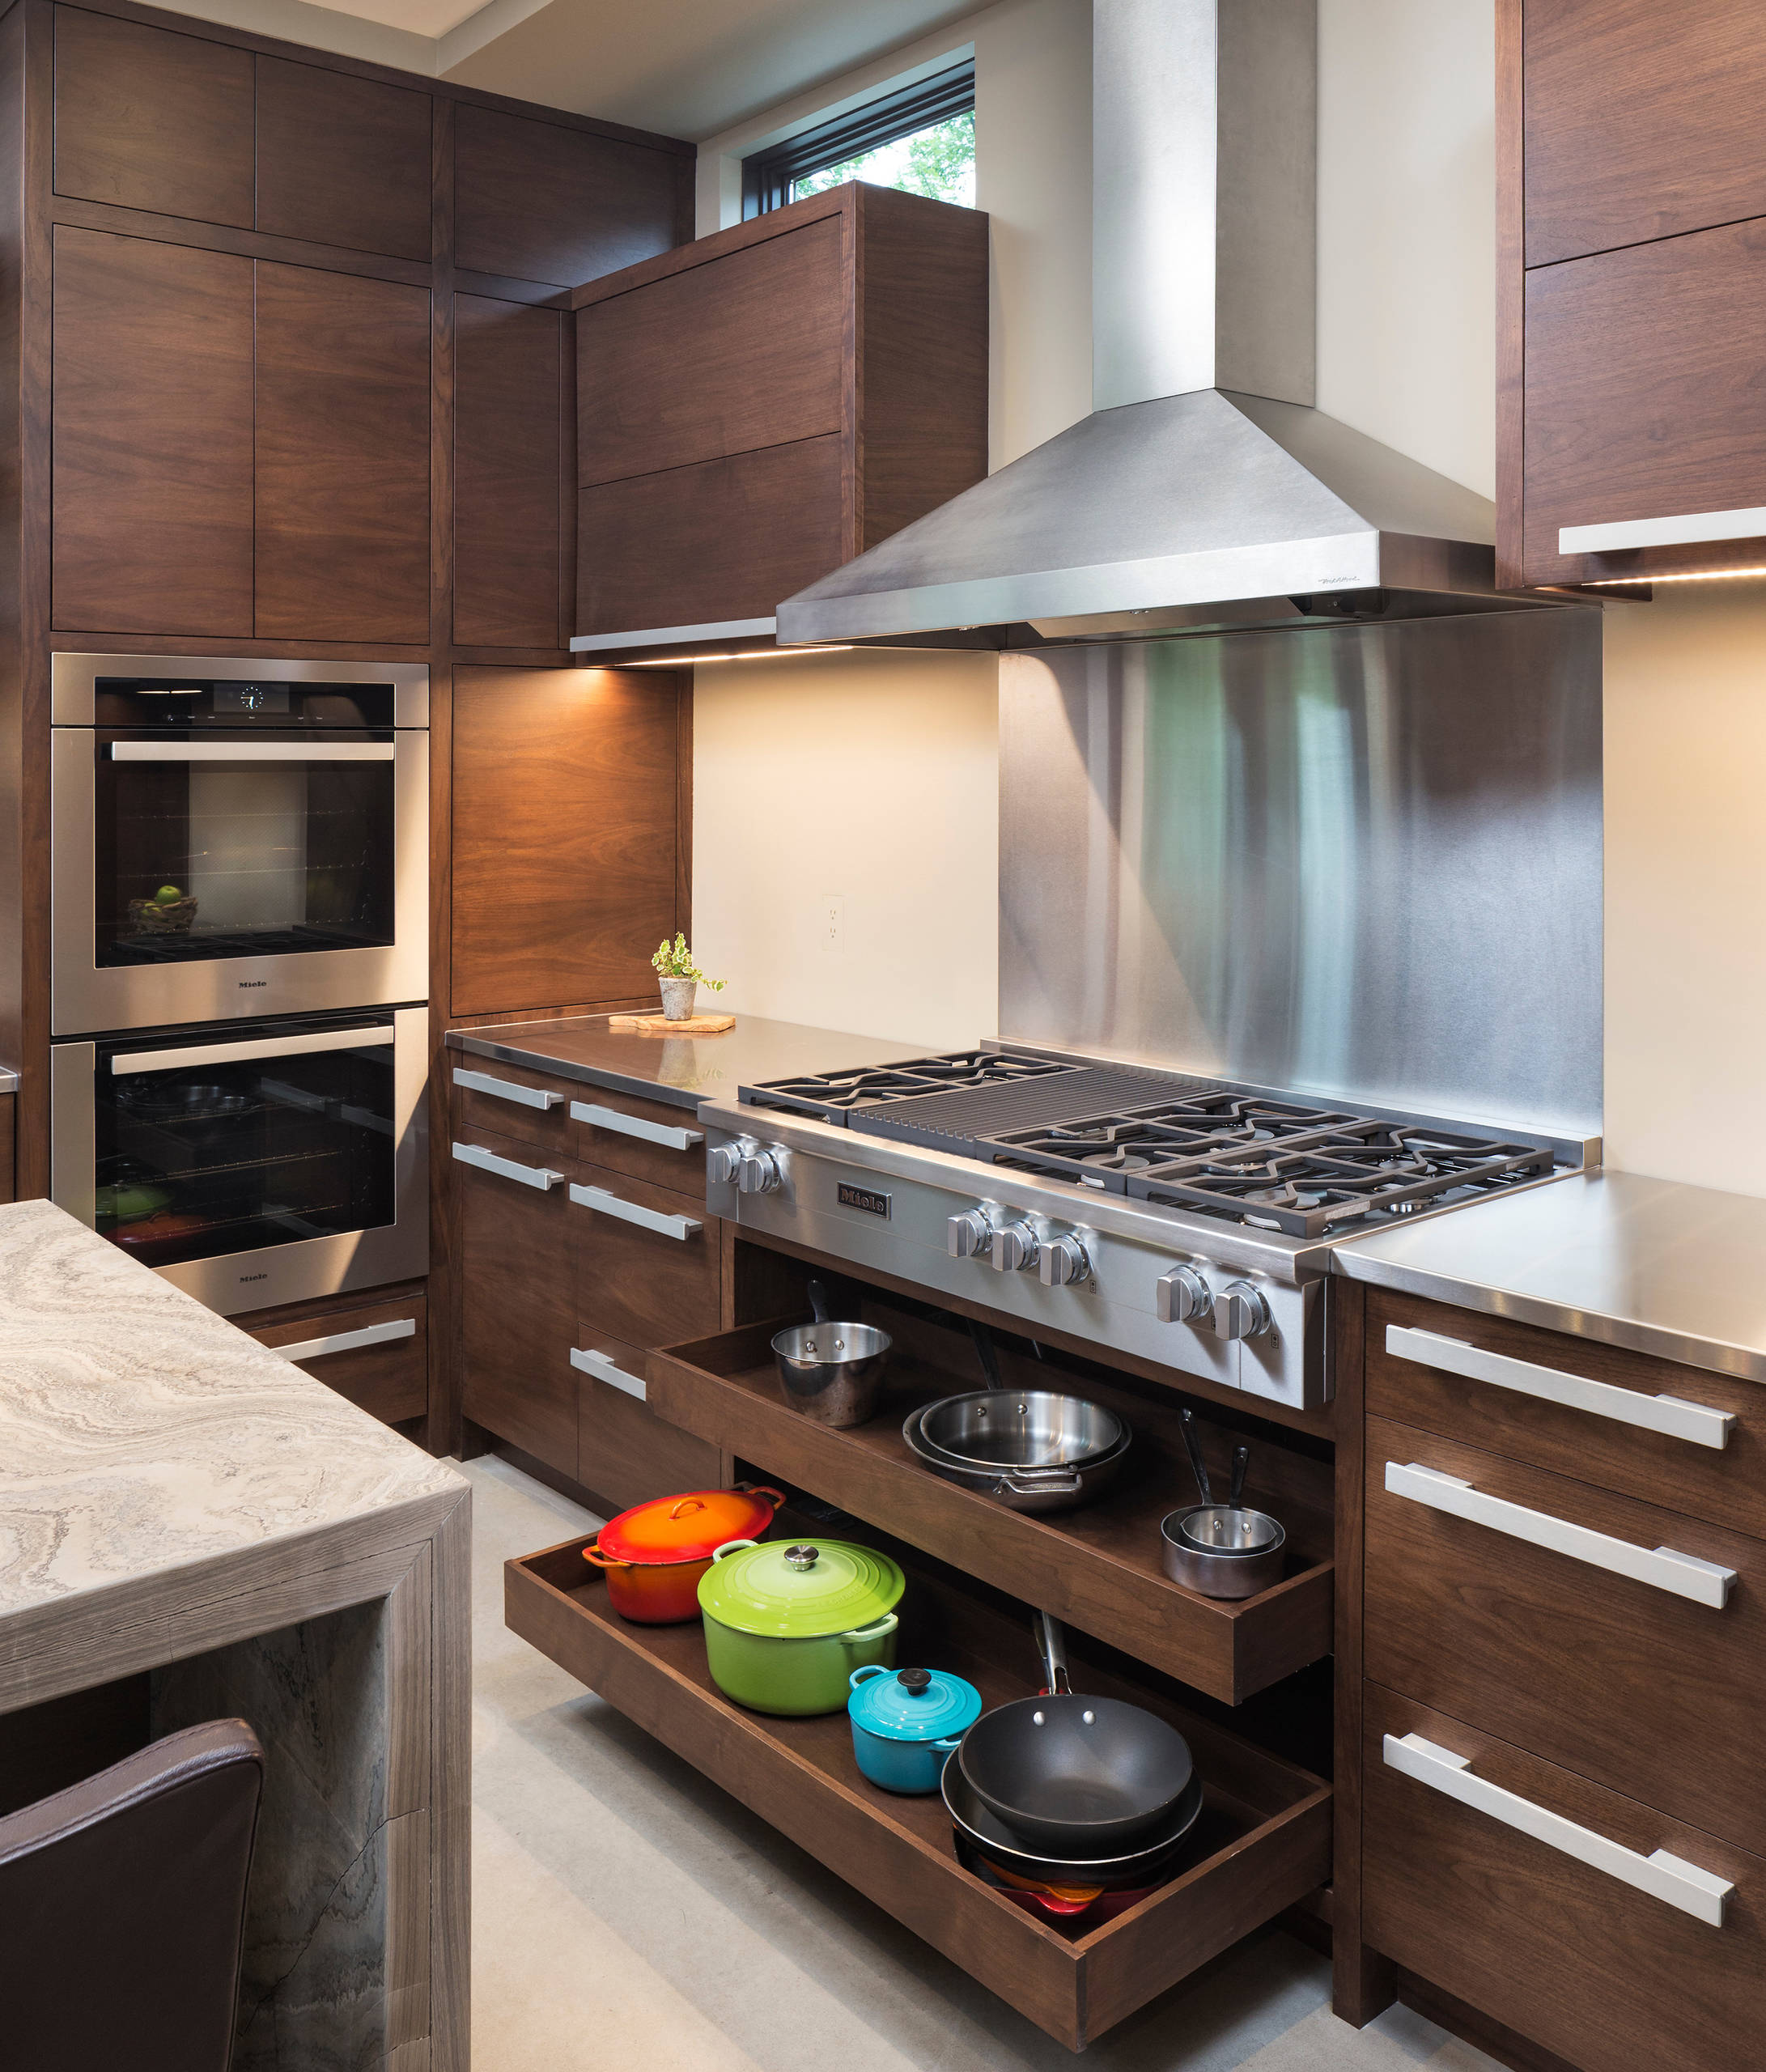 75 Beautiful Modern Kitchen Pictures Ideas January 2021 Houzz